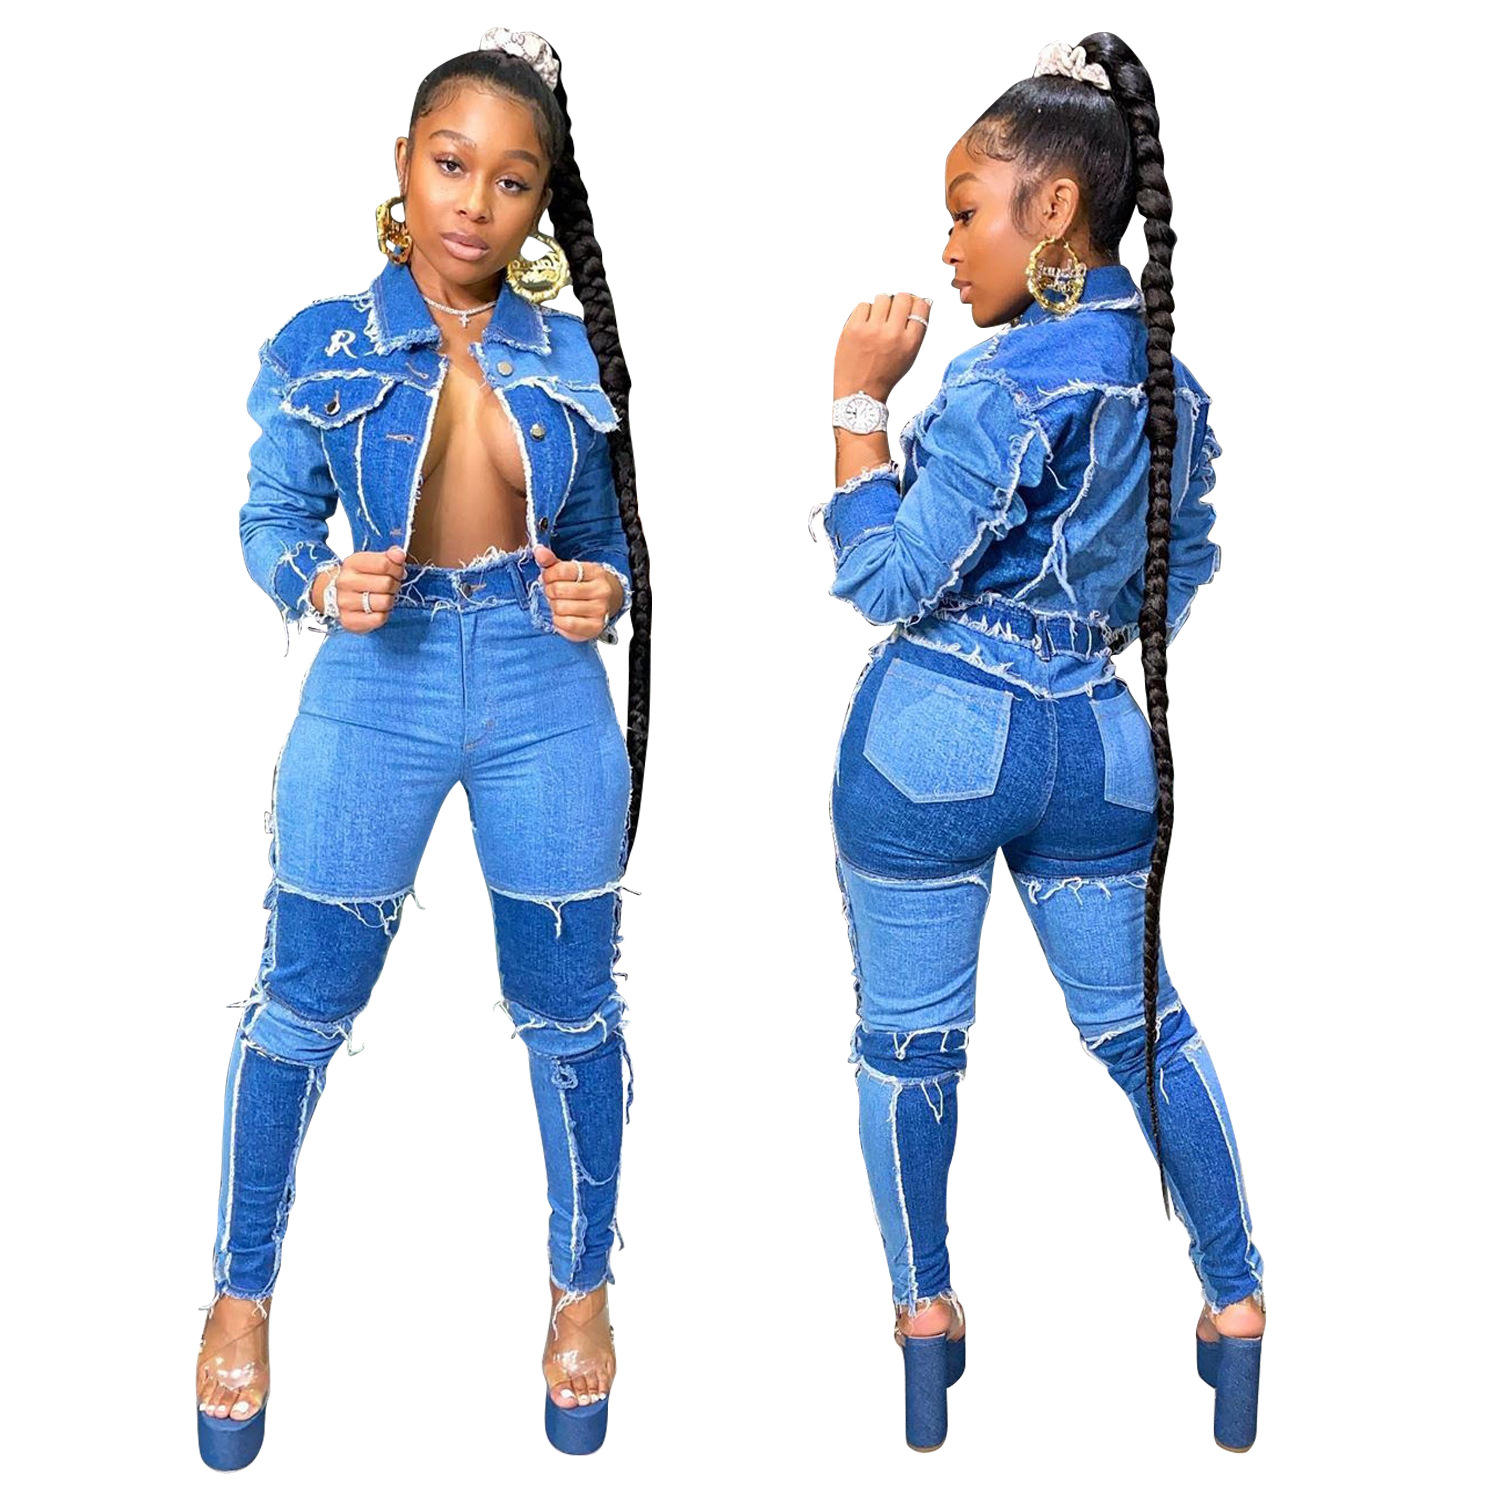 Hot sale fall Cardigan stitching denim suit high waist denim jean outfits for women